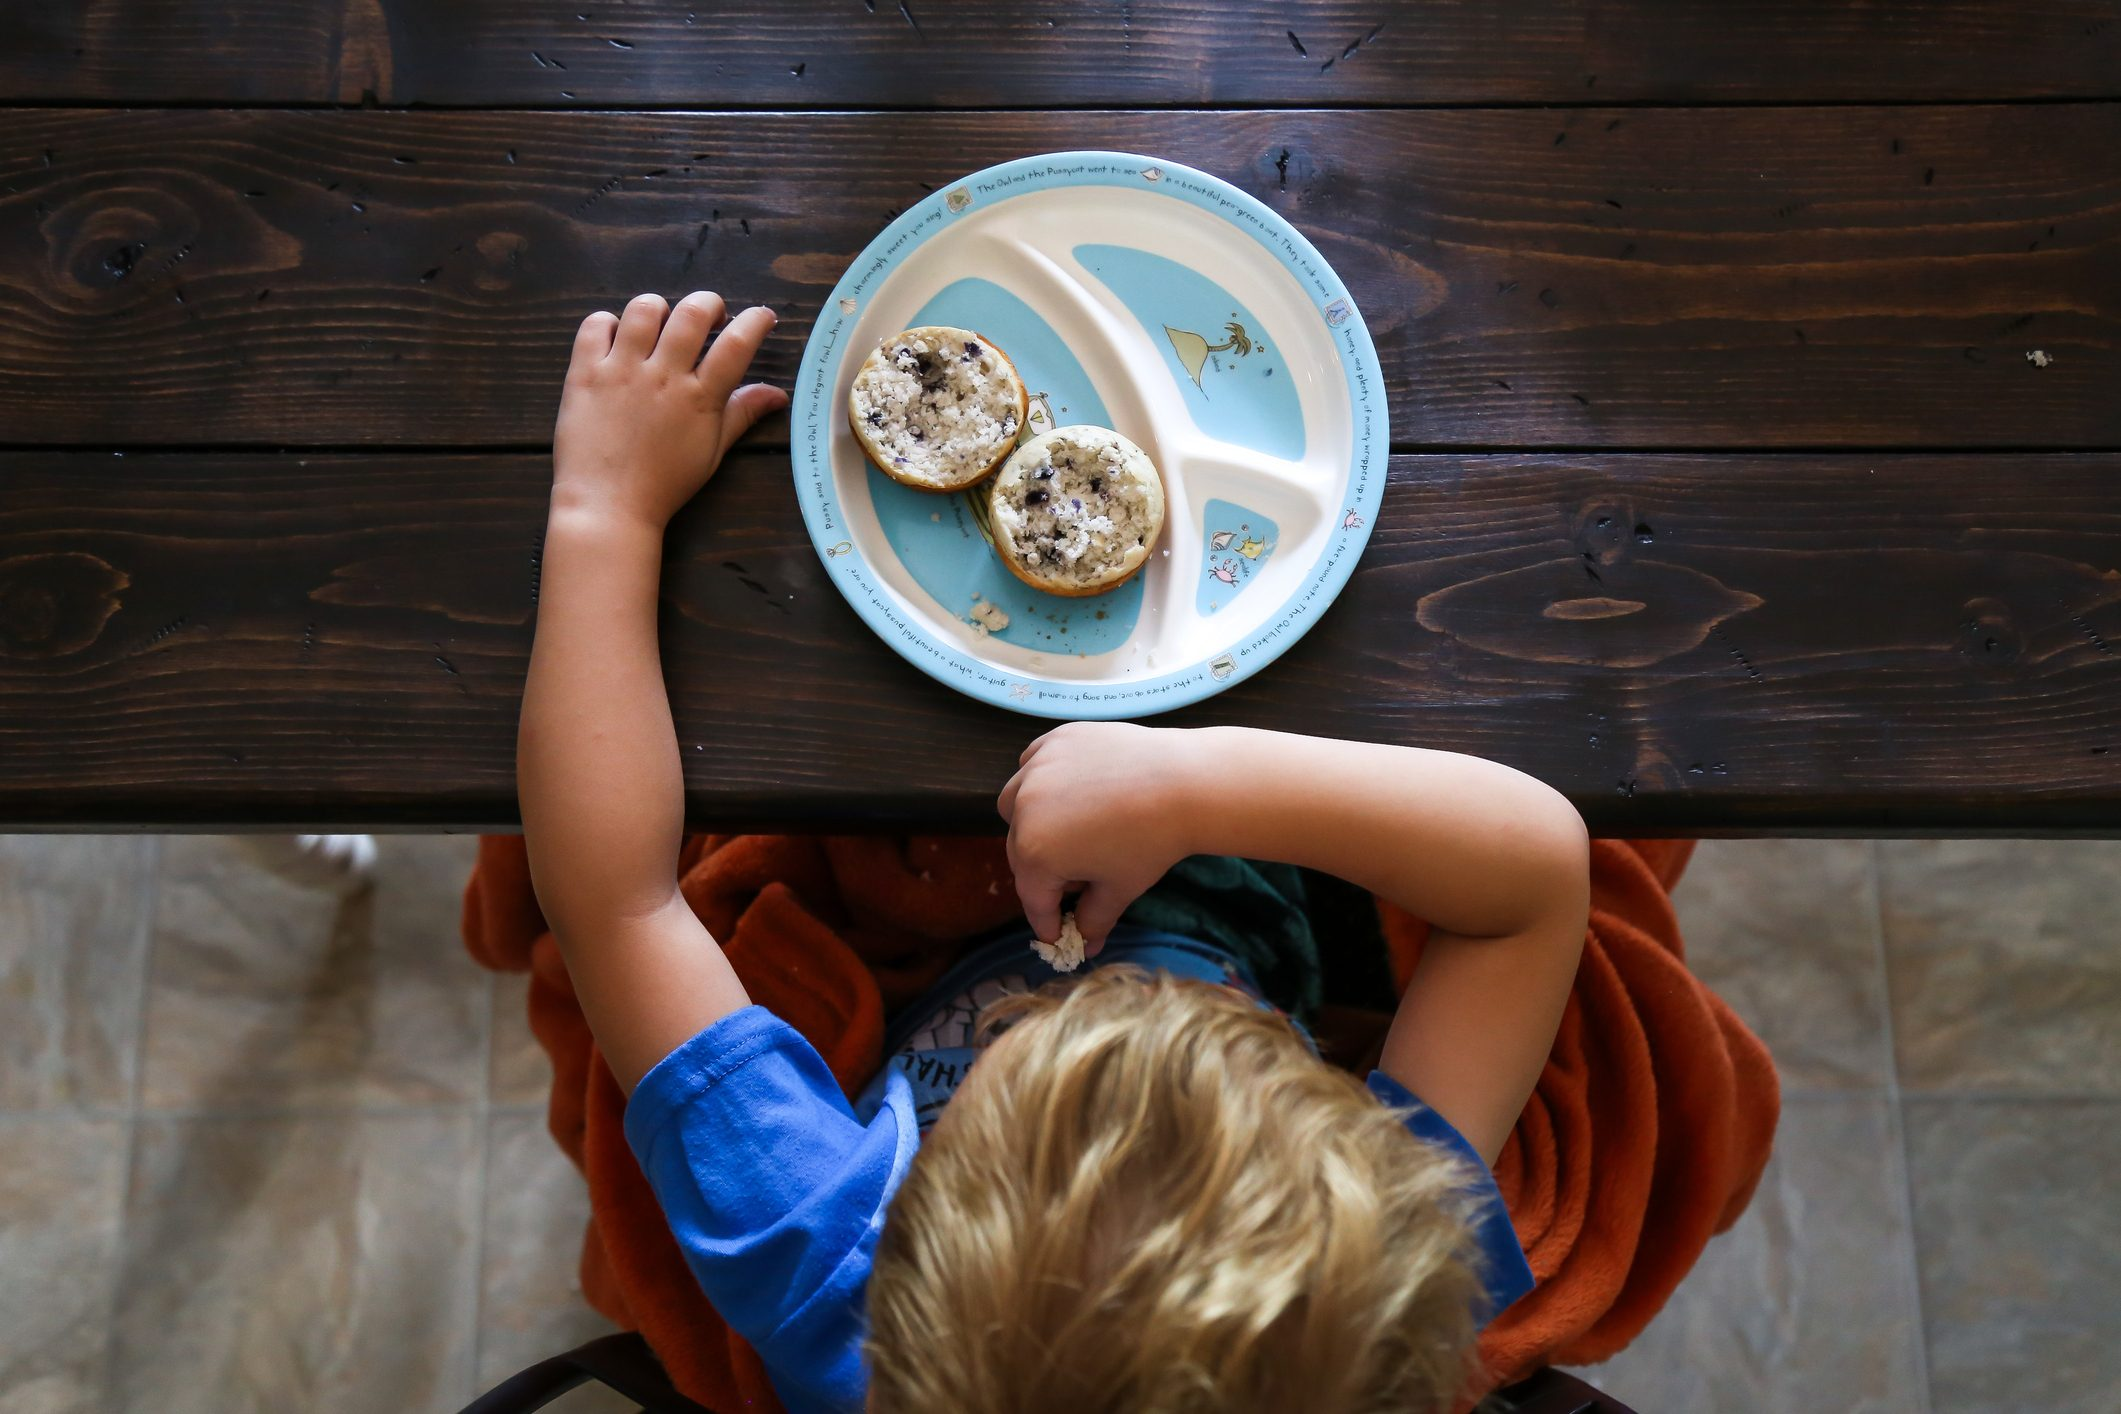 overhead shot of young boy and plate of food